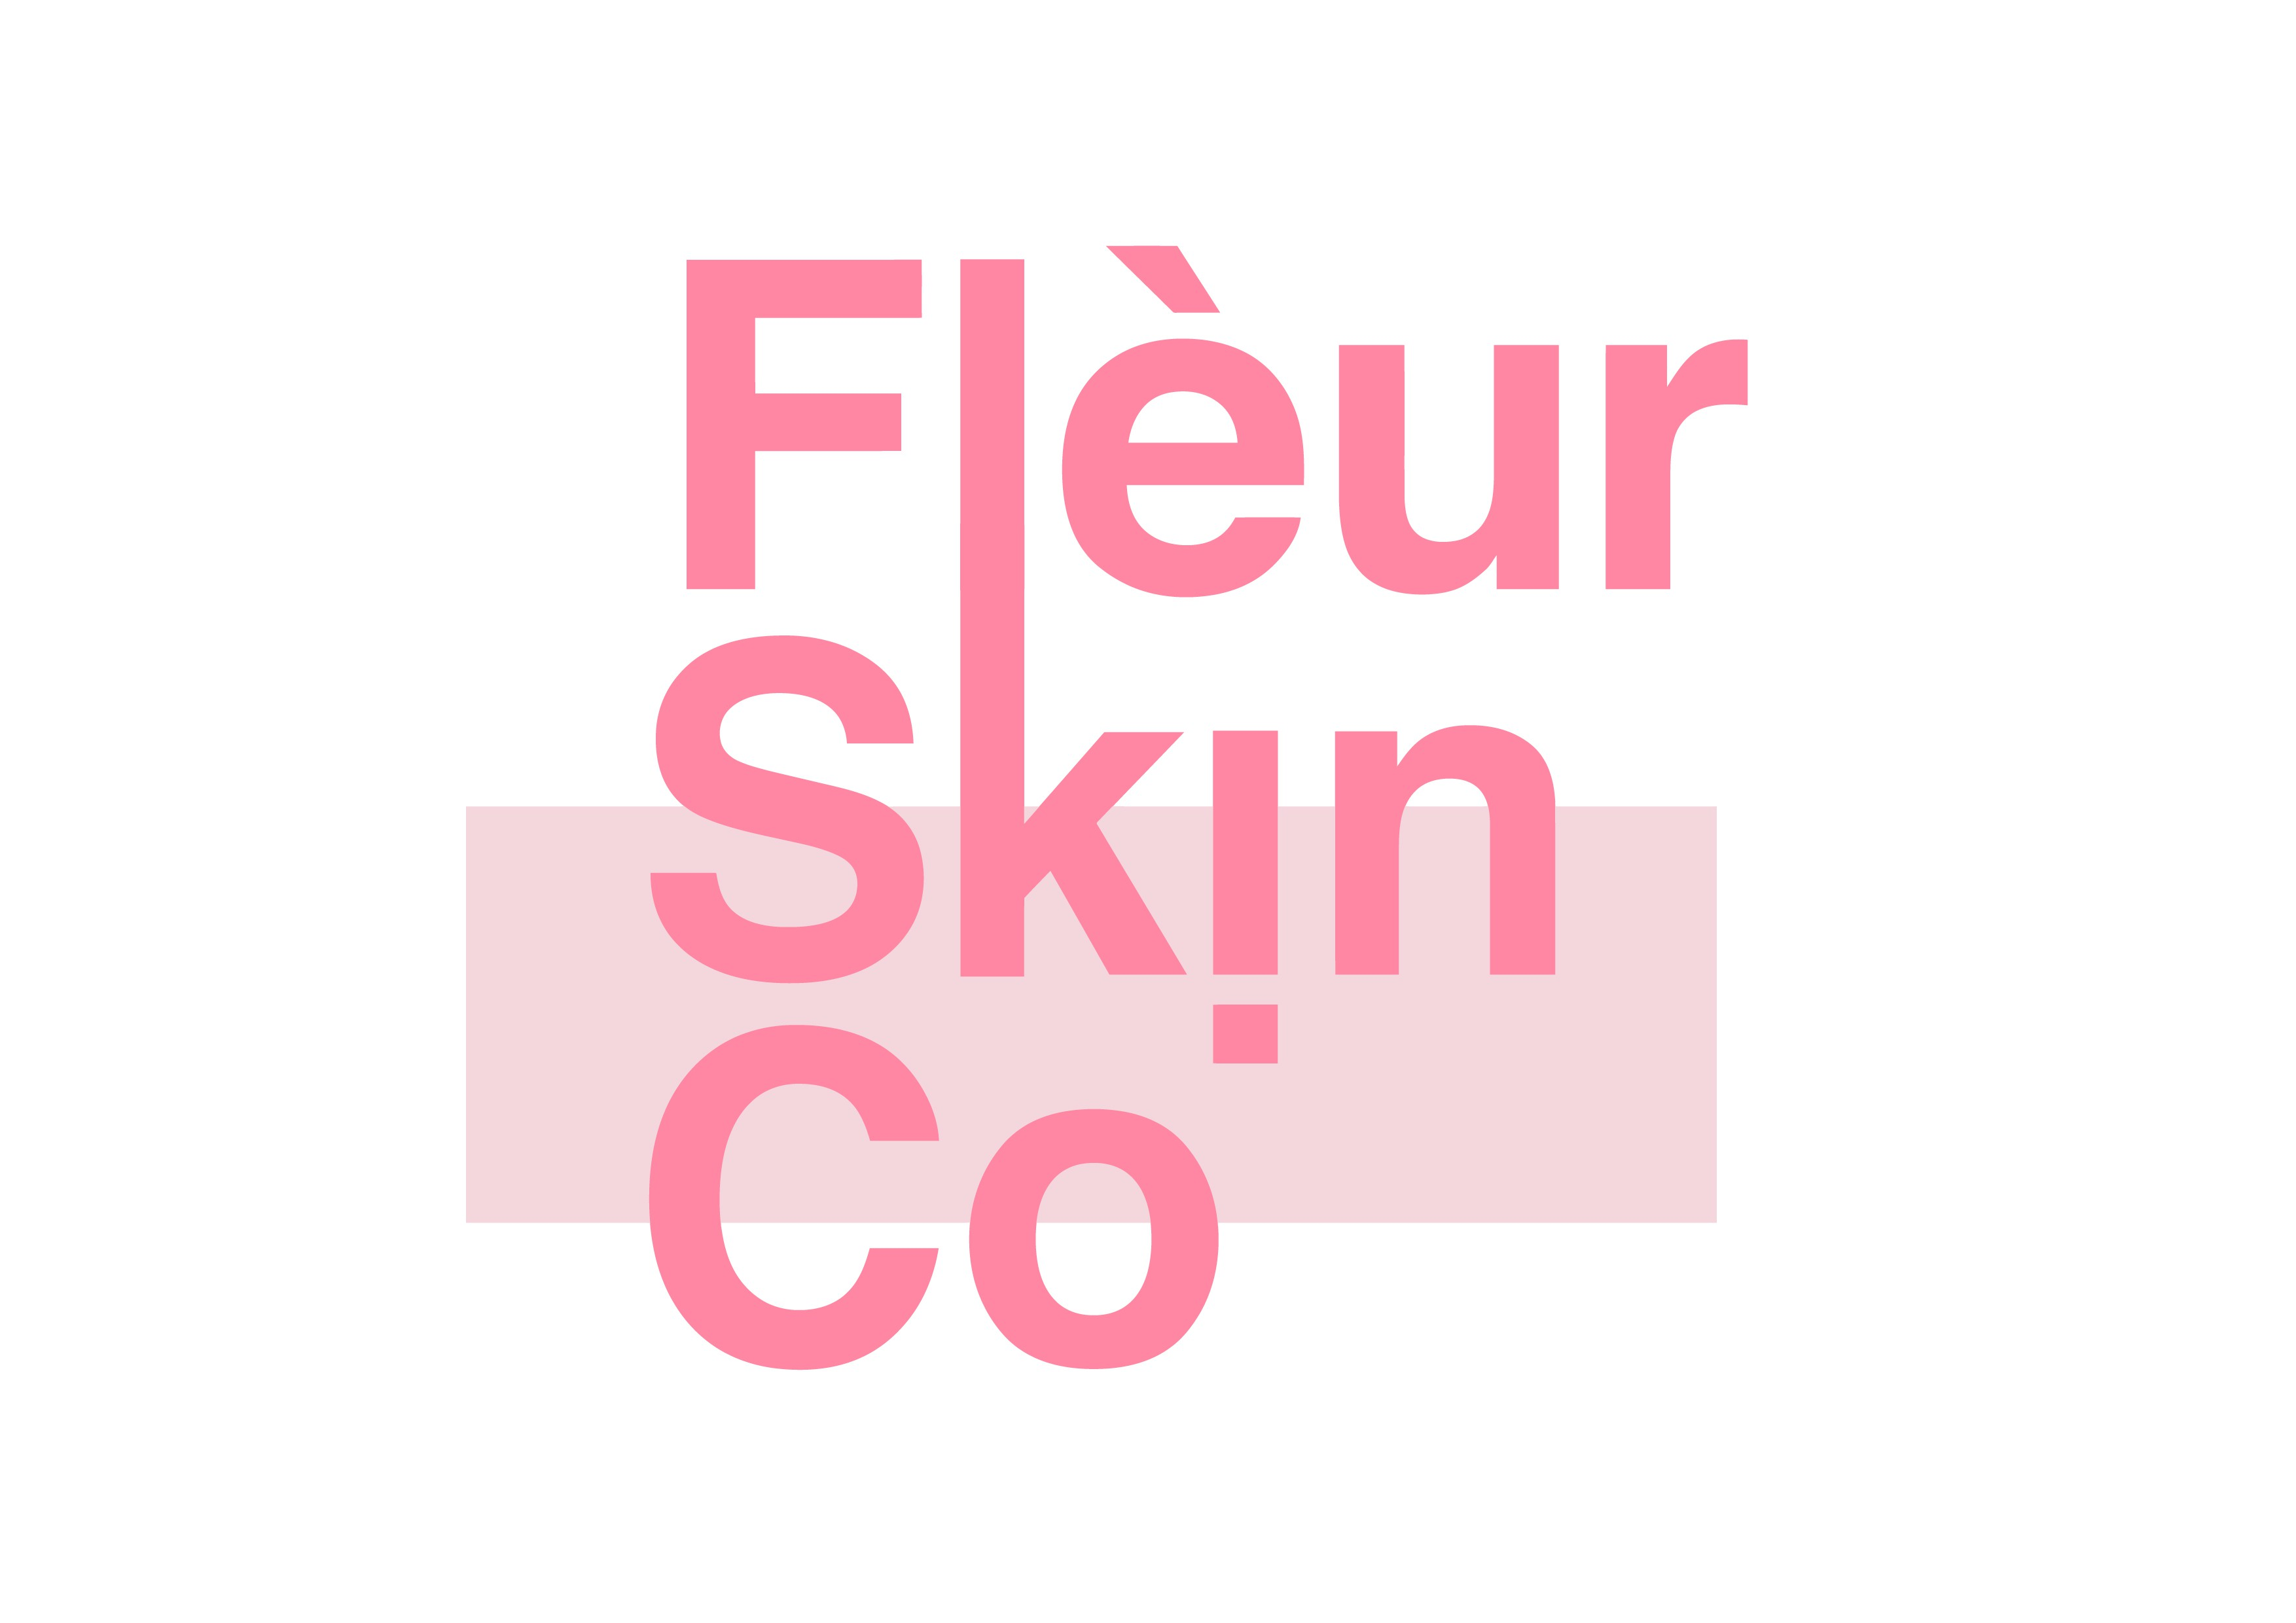 Modern skin care logo - to appeal to women and influencers